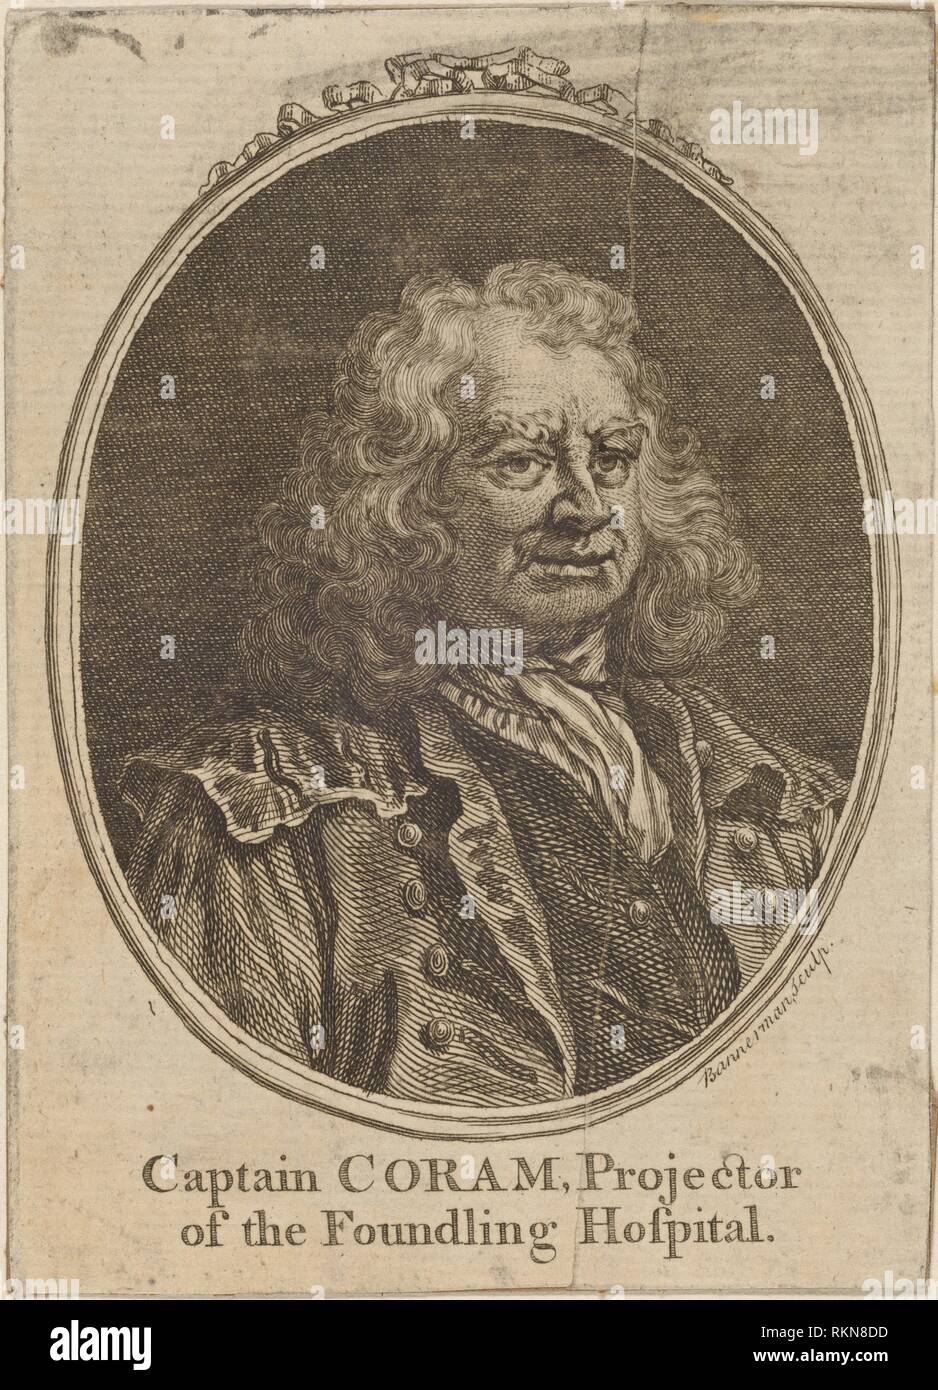 Captain Coram, Projector of the Foundling Hospital. Hogarth, William, 1697-1764 (Printmaker). William Hogarth: prints. Date Created: 1700. Prints. - Stock Image